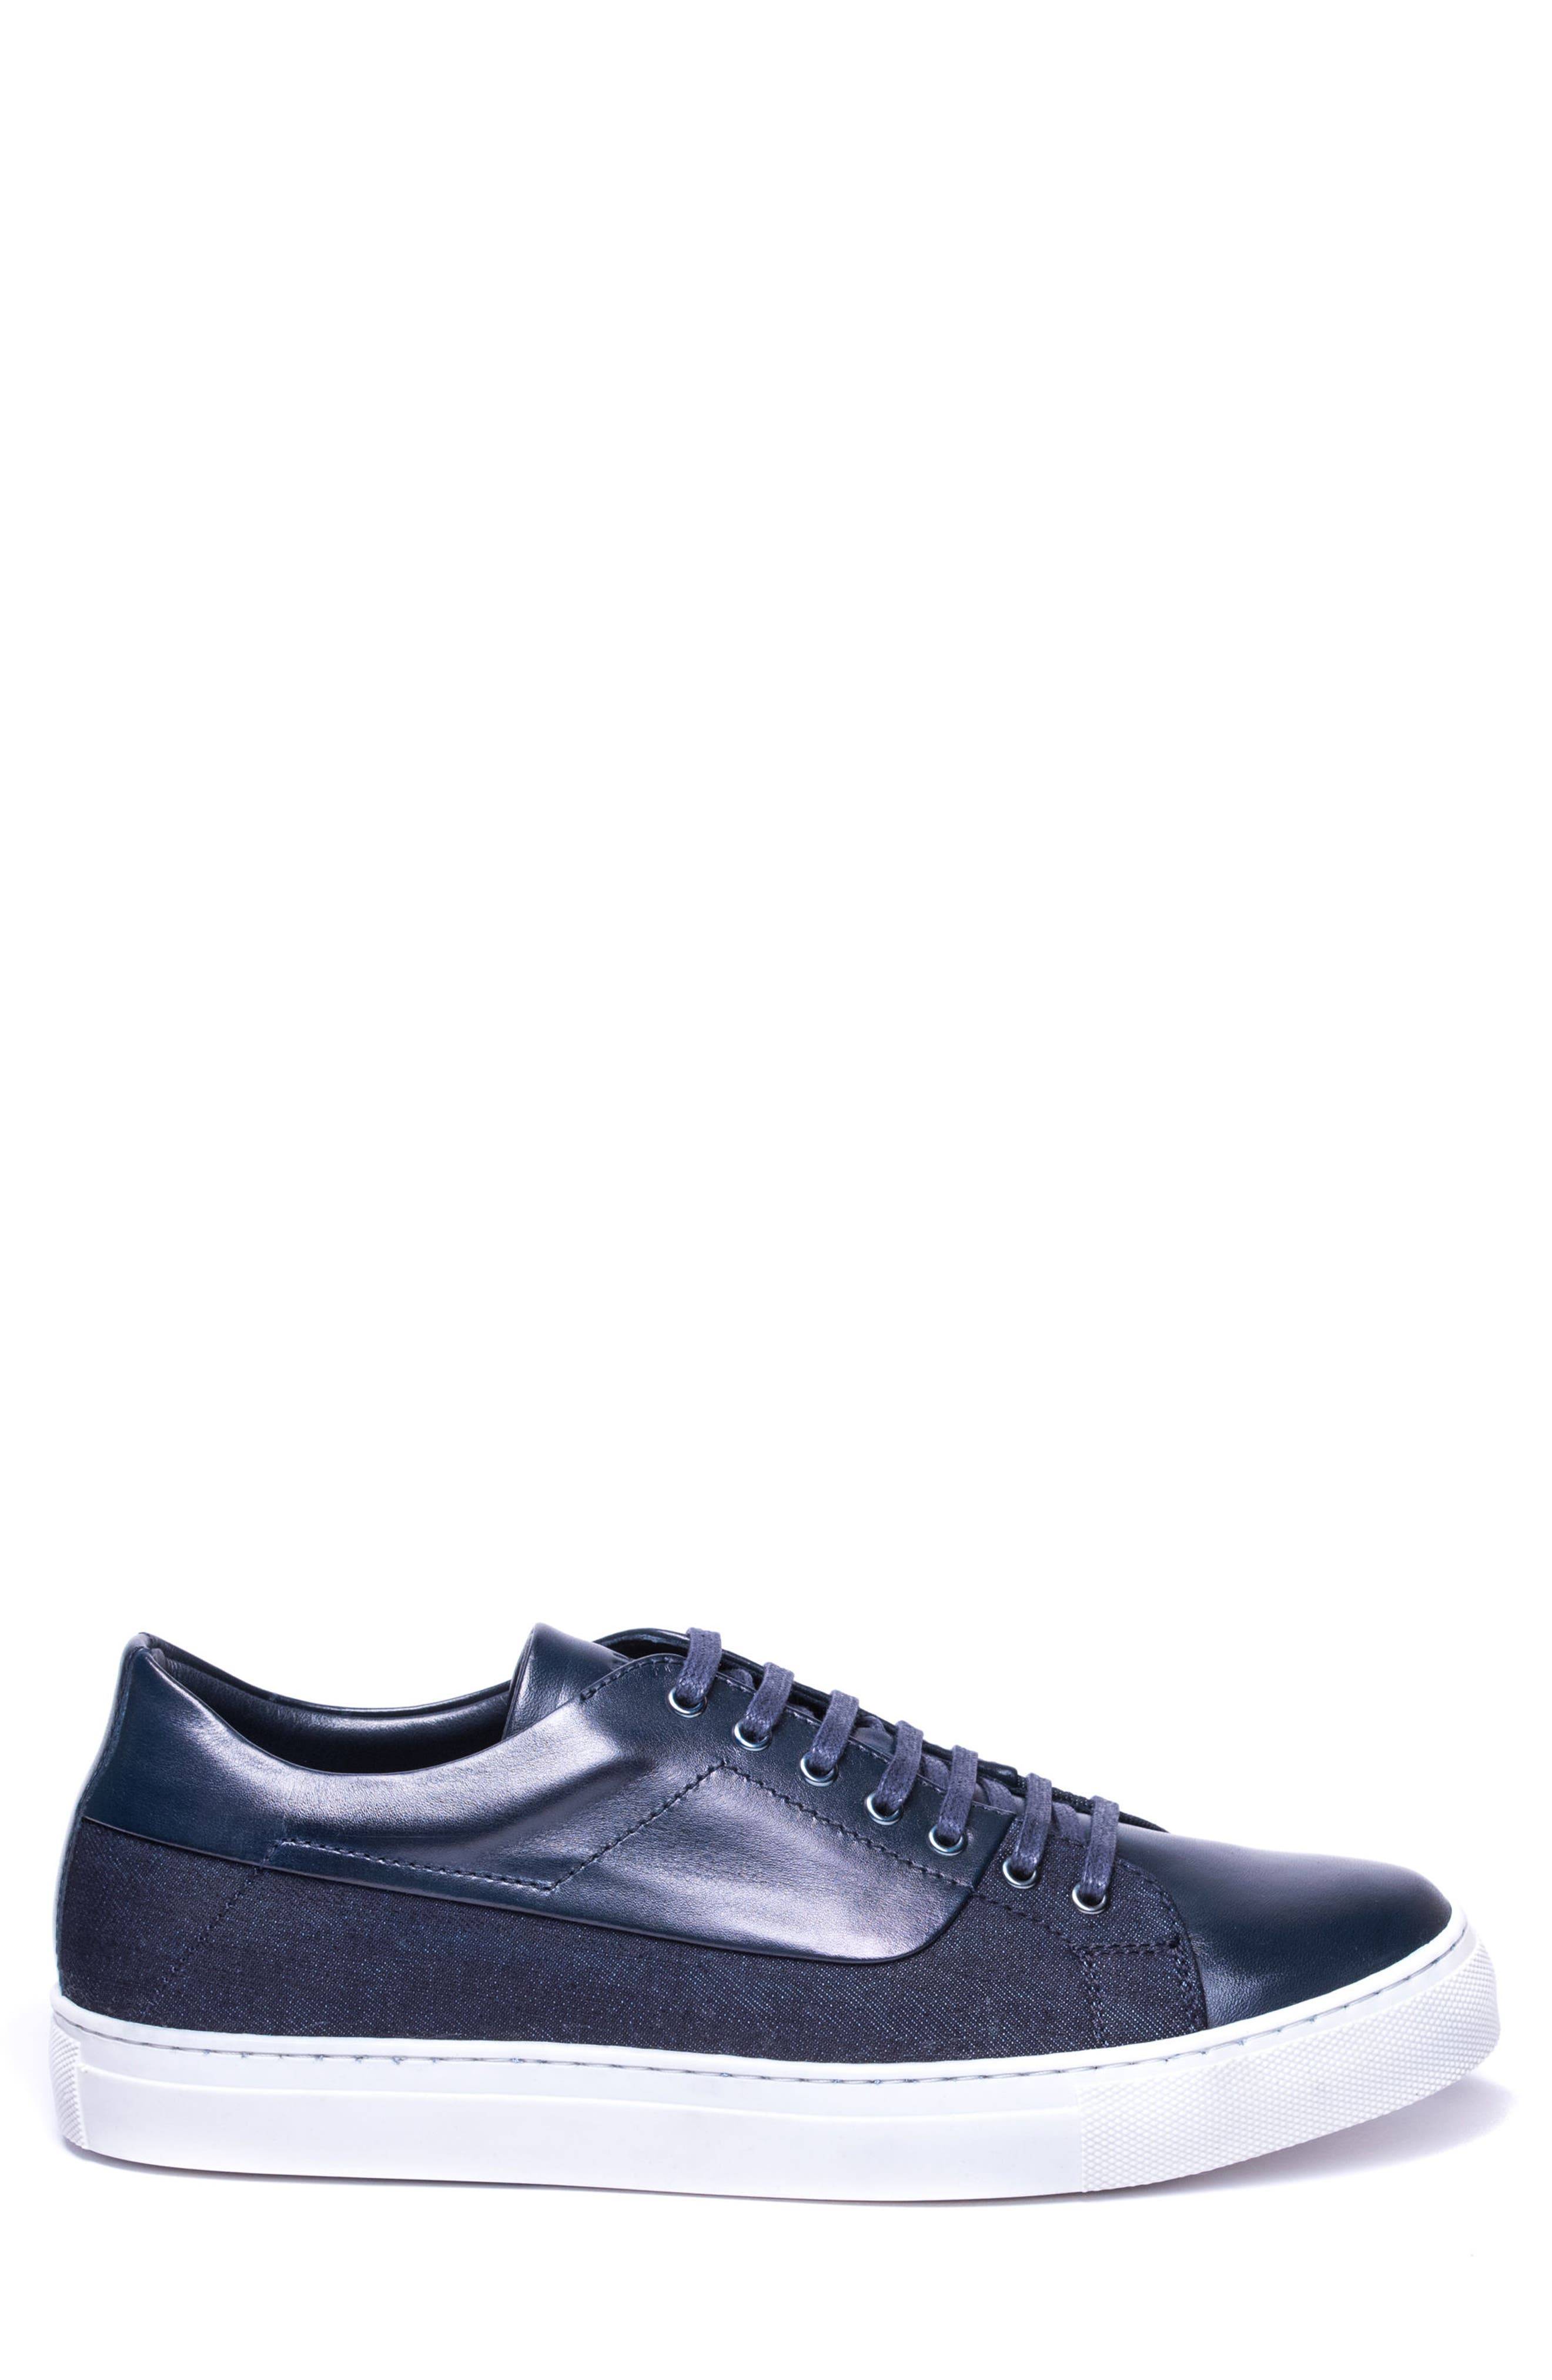 Luke Low Top Sneaker,                             Alternate thumbnail 3, color,                             NAVY LEATHER